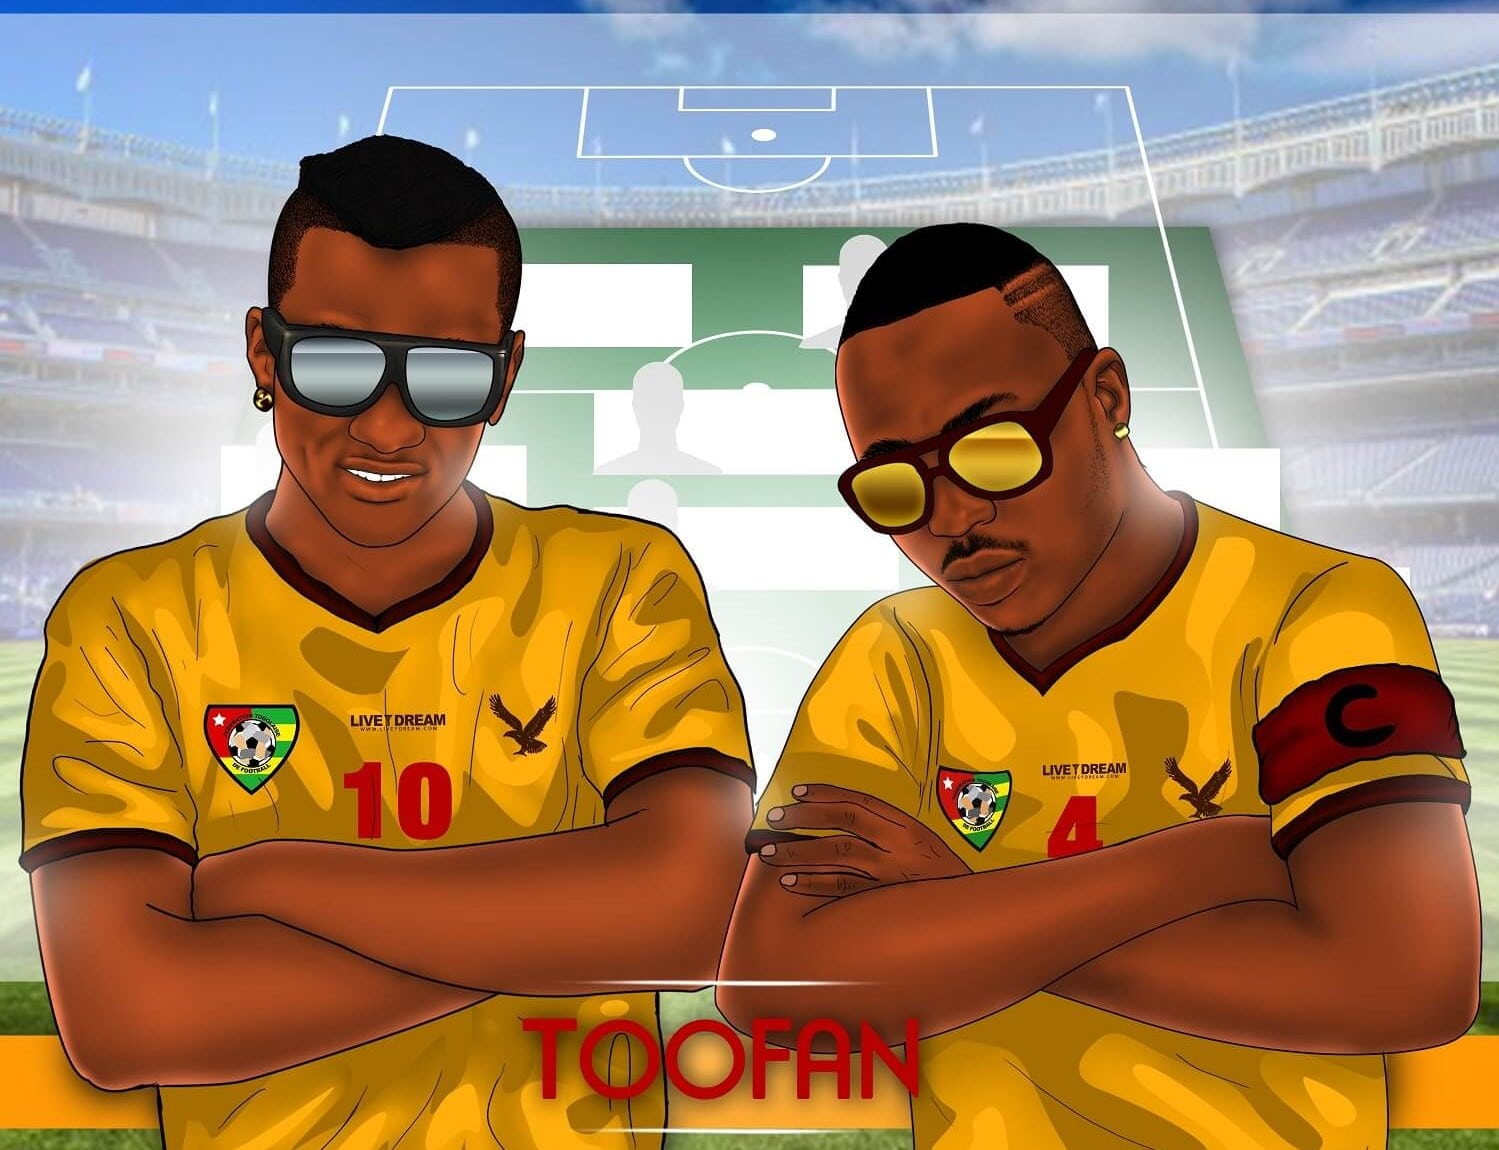 0ac1d27c3 Toofan: comment le football a réuni le groupe - Africa Top Success